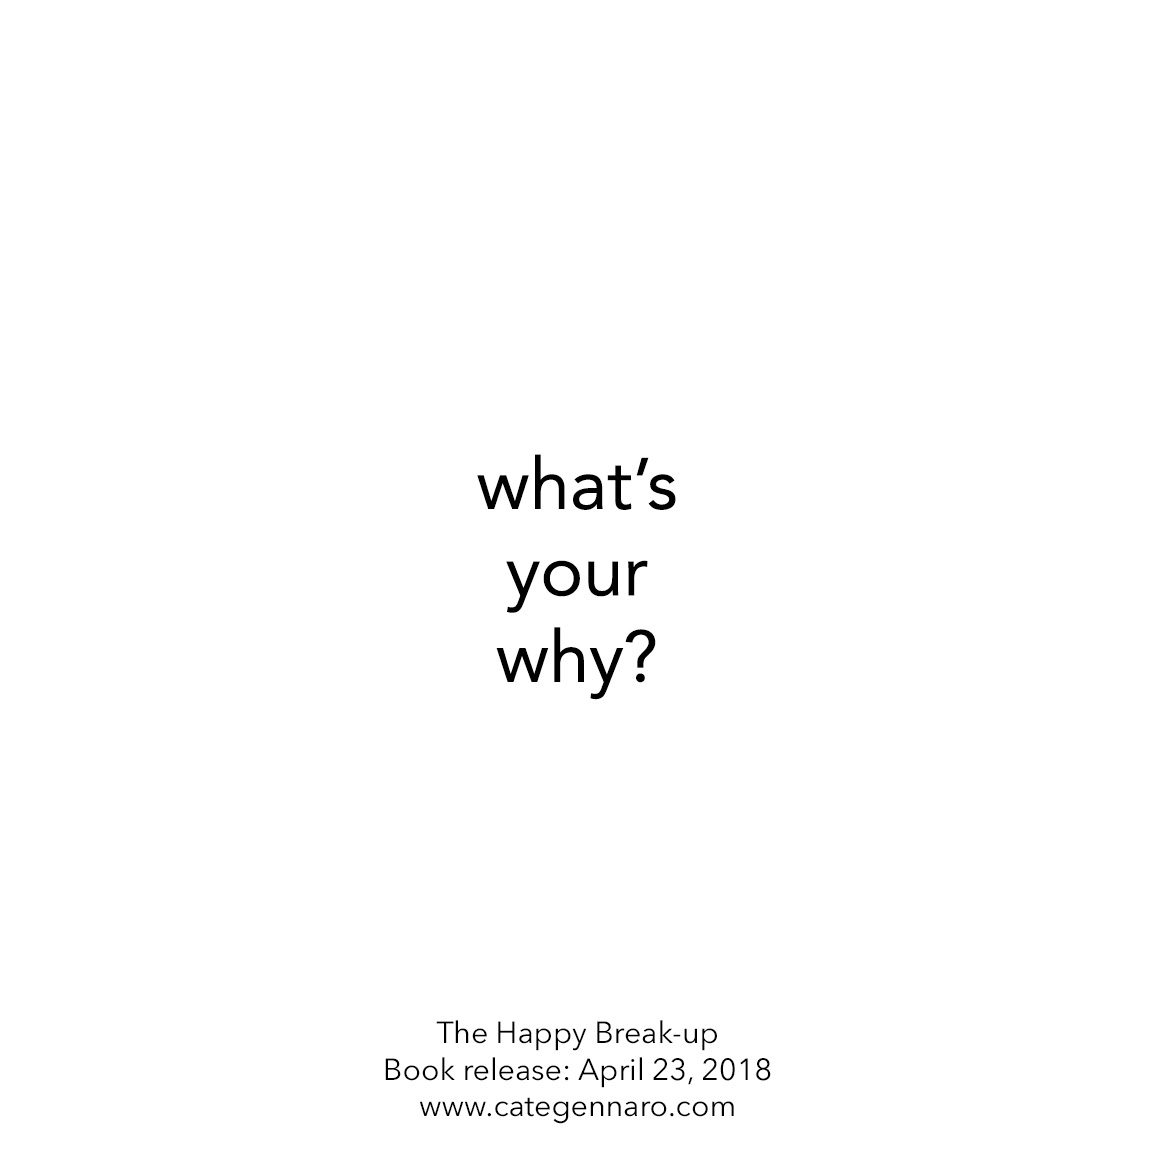 What's your why? Find your motivation to increase your self confidence and self esteem after a break-up.